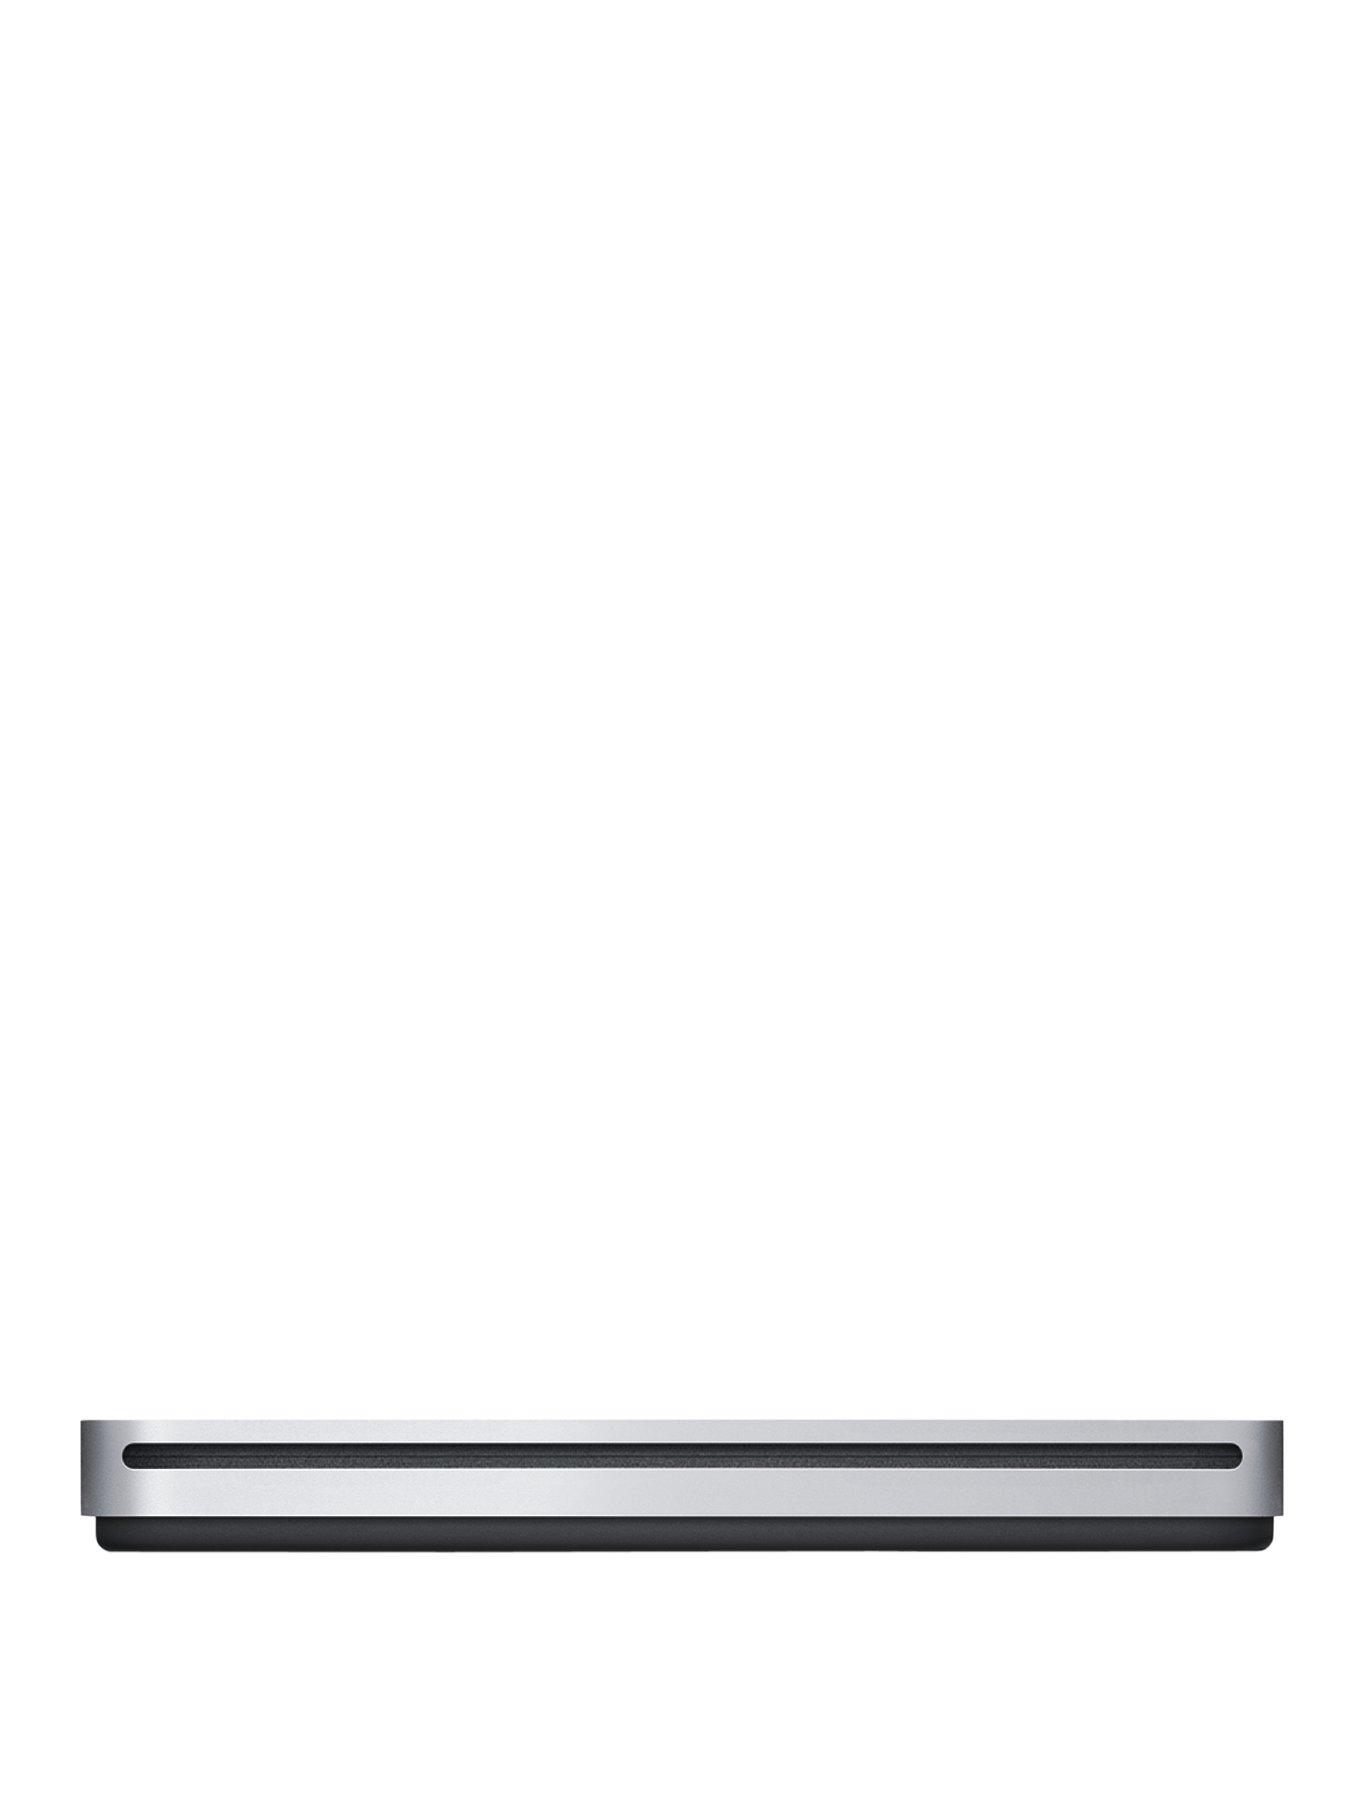 Apple USB SuperDrive - White